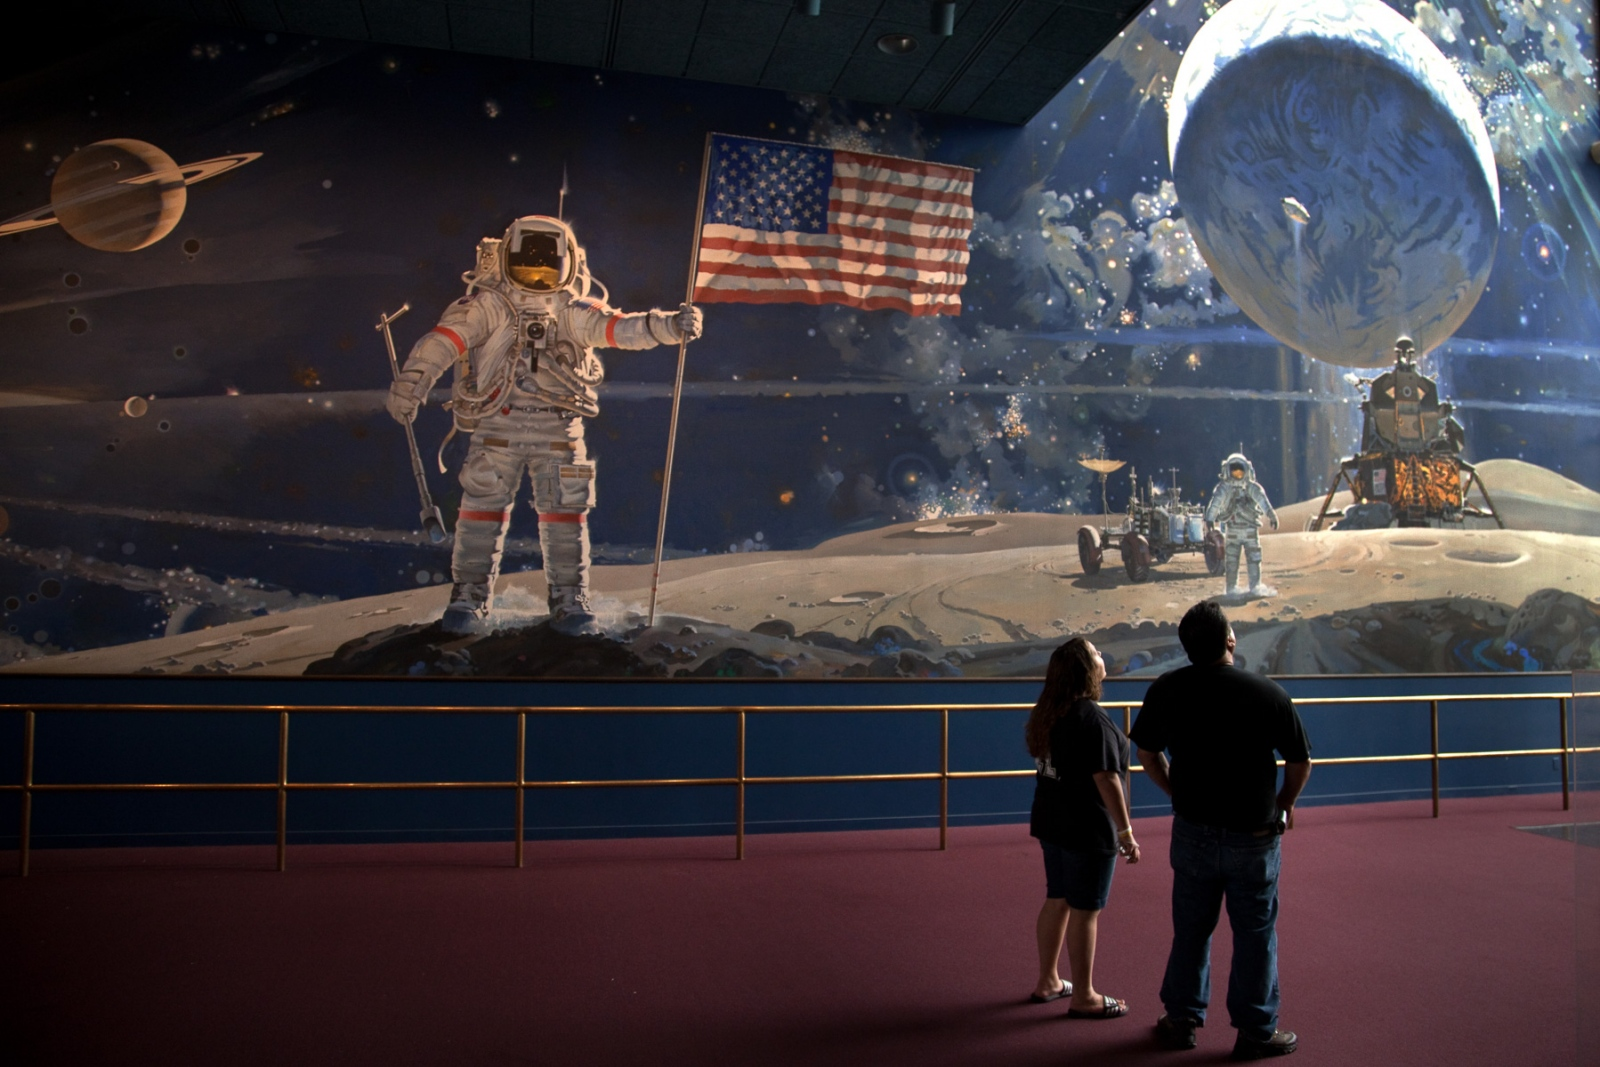 Visitors stand next to a mural showing the landing of Apollo 11 on the moon during the 40th Anniversary of that historic moment what landed the first humans on the moon.